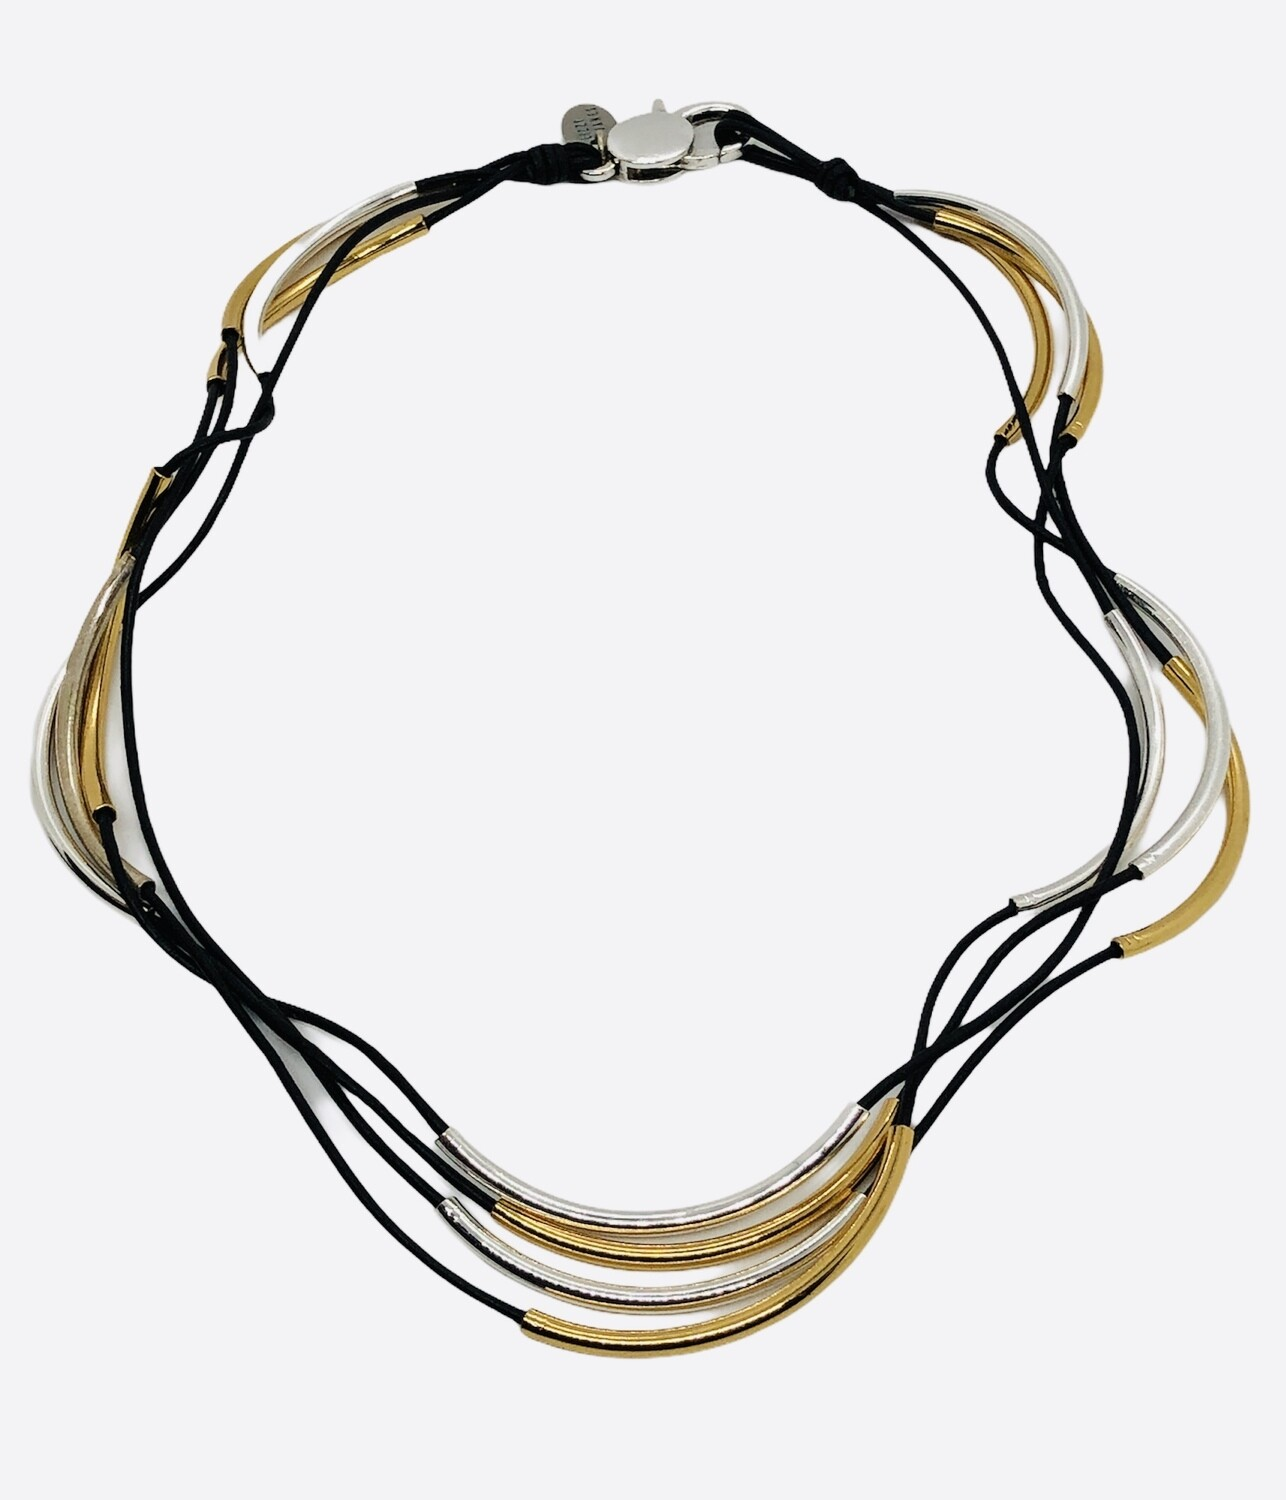 New Designer LIZZY JAMES Silver & Gold Accent Cord Necklace